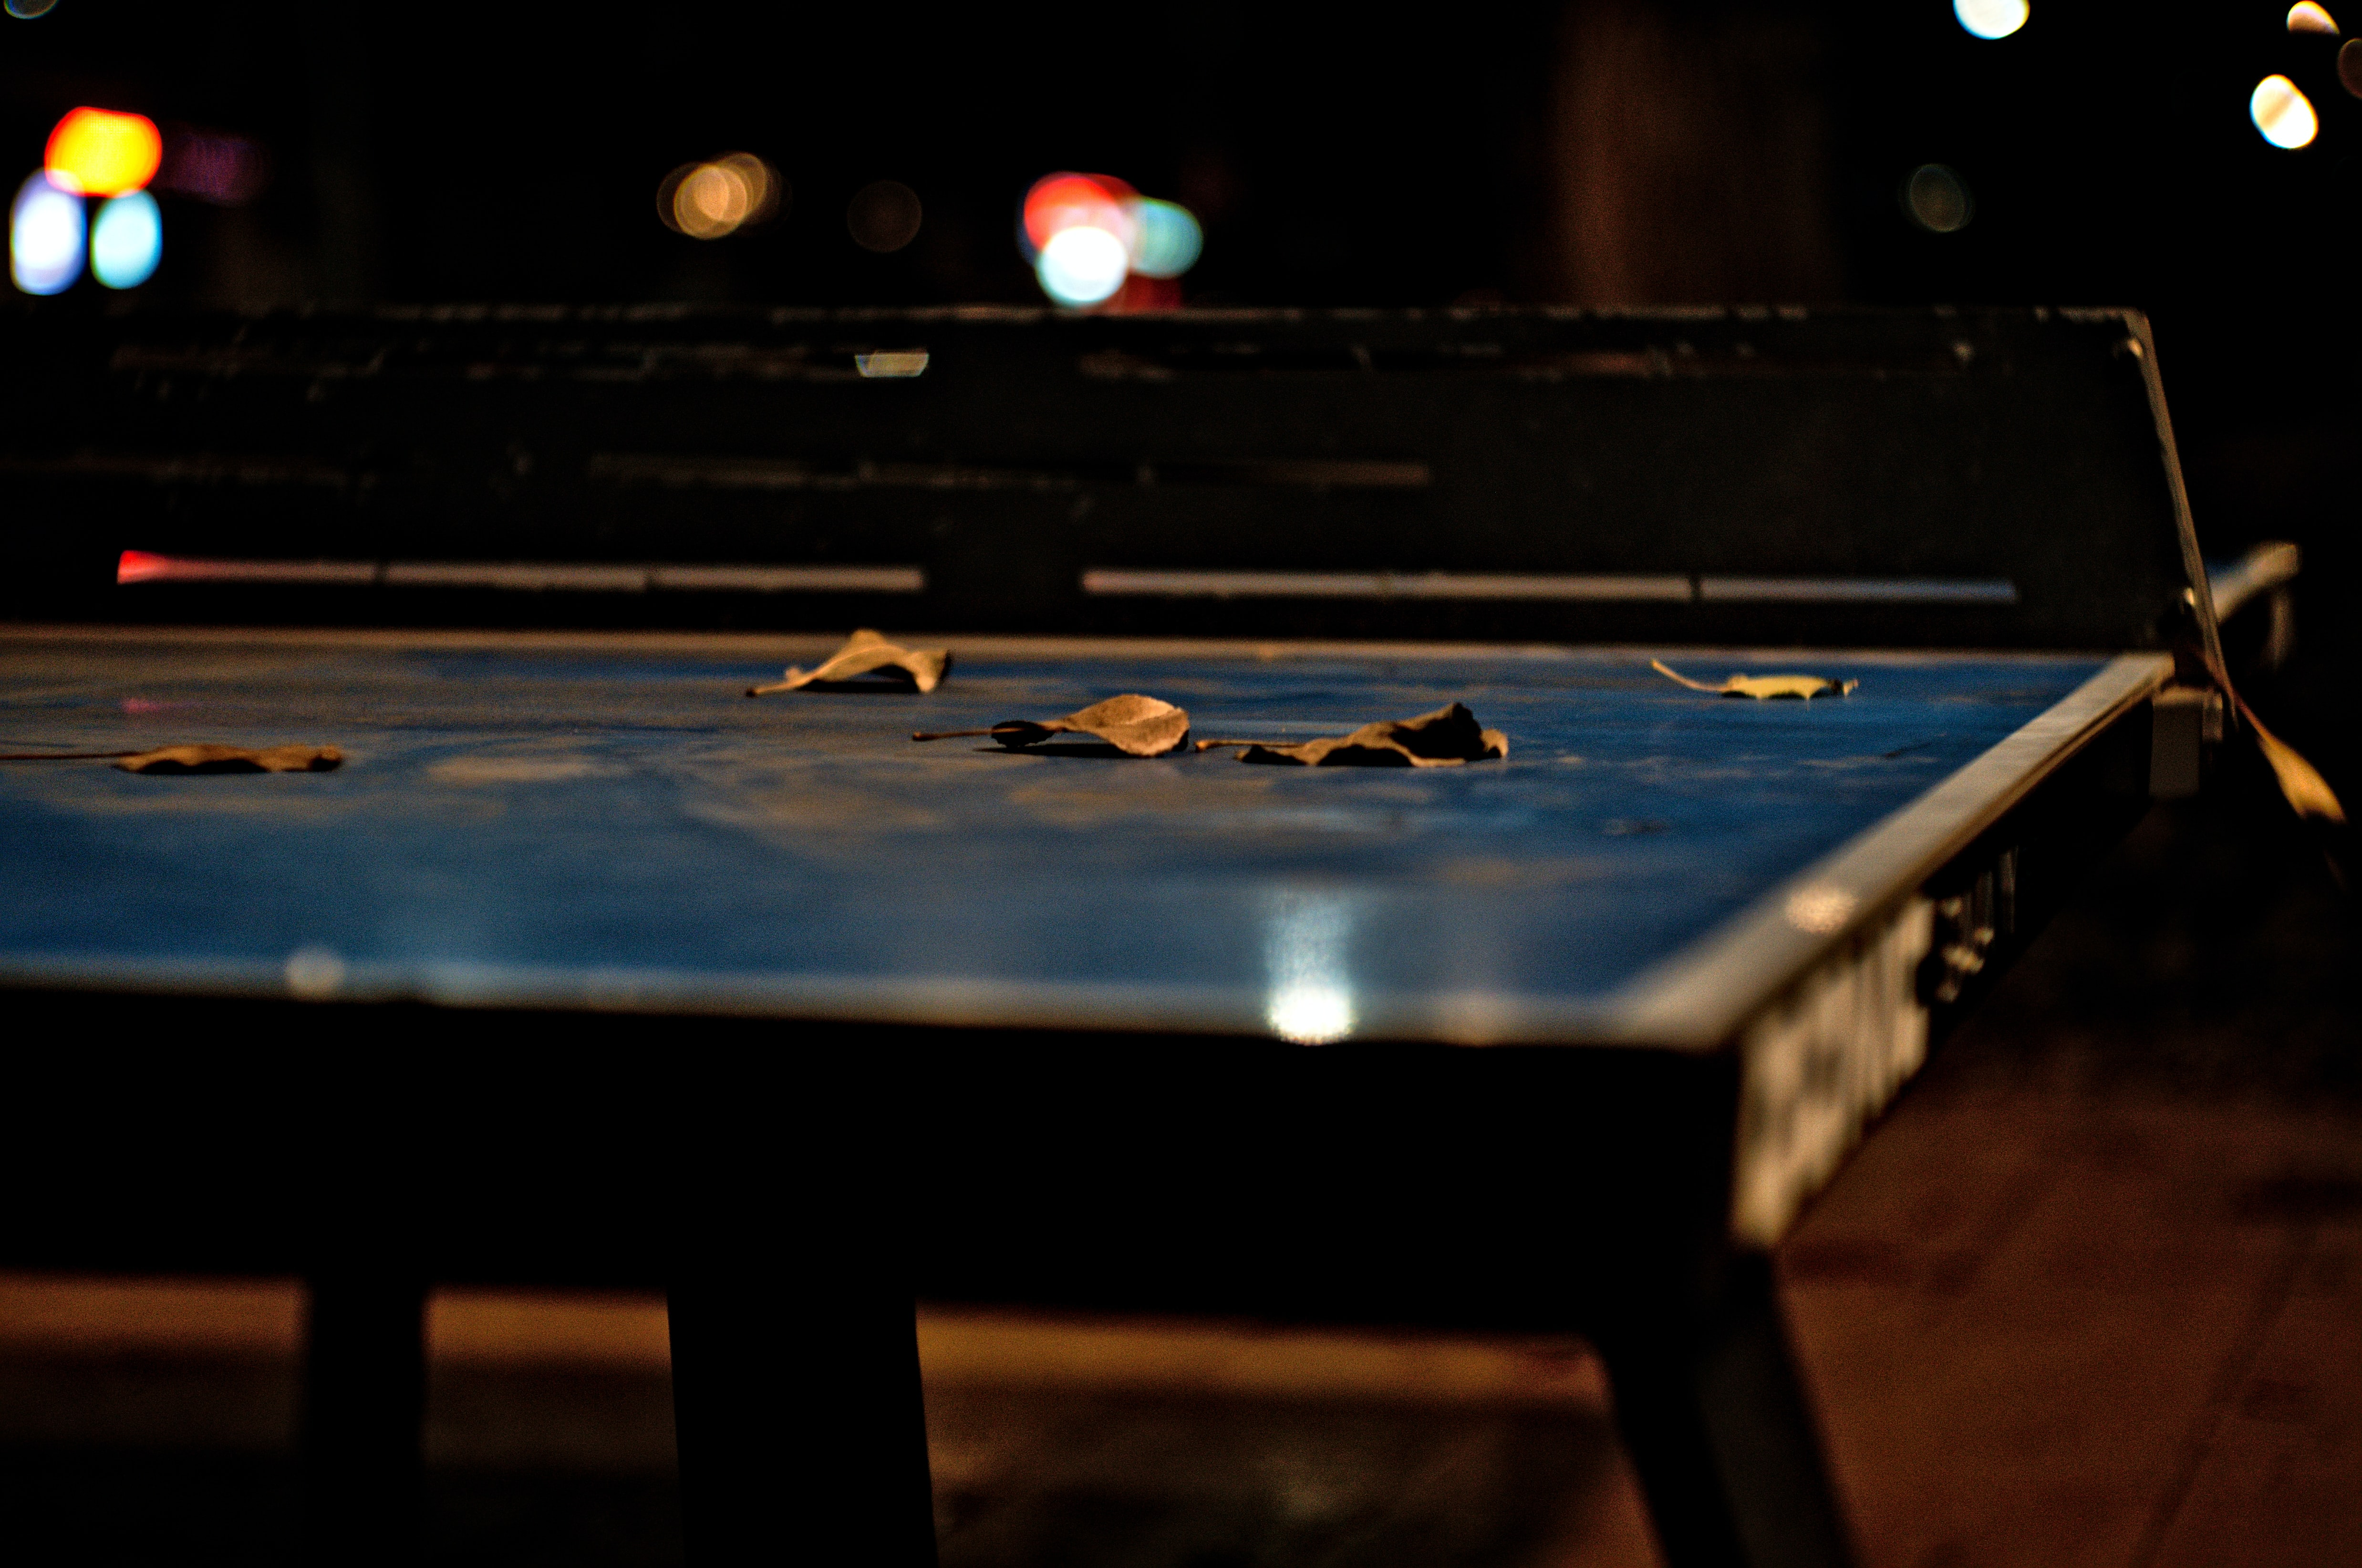 Table Tennis Pictures Download Free Images On Unsplash